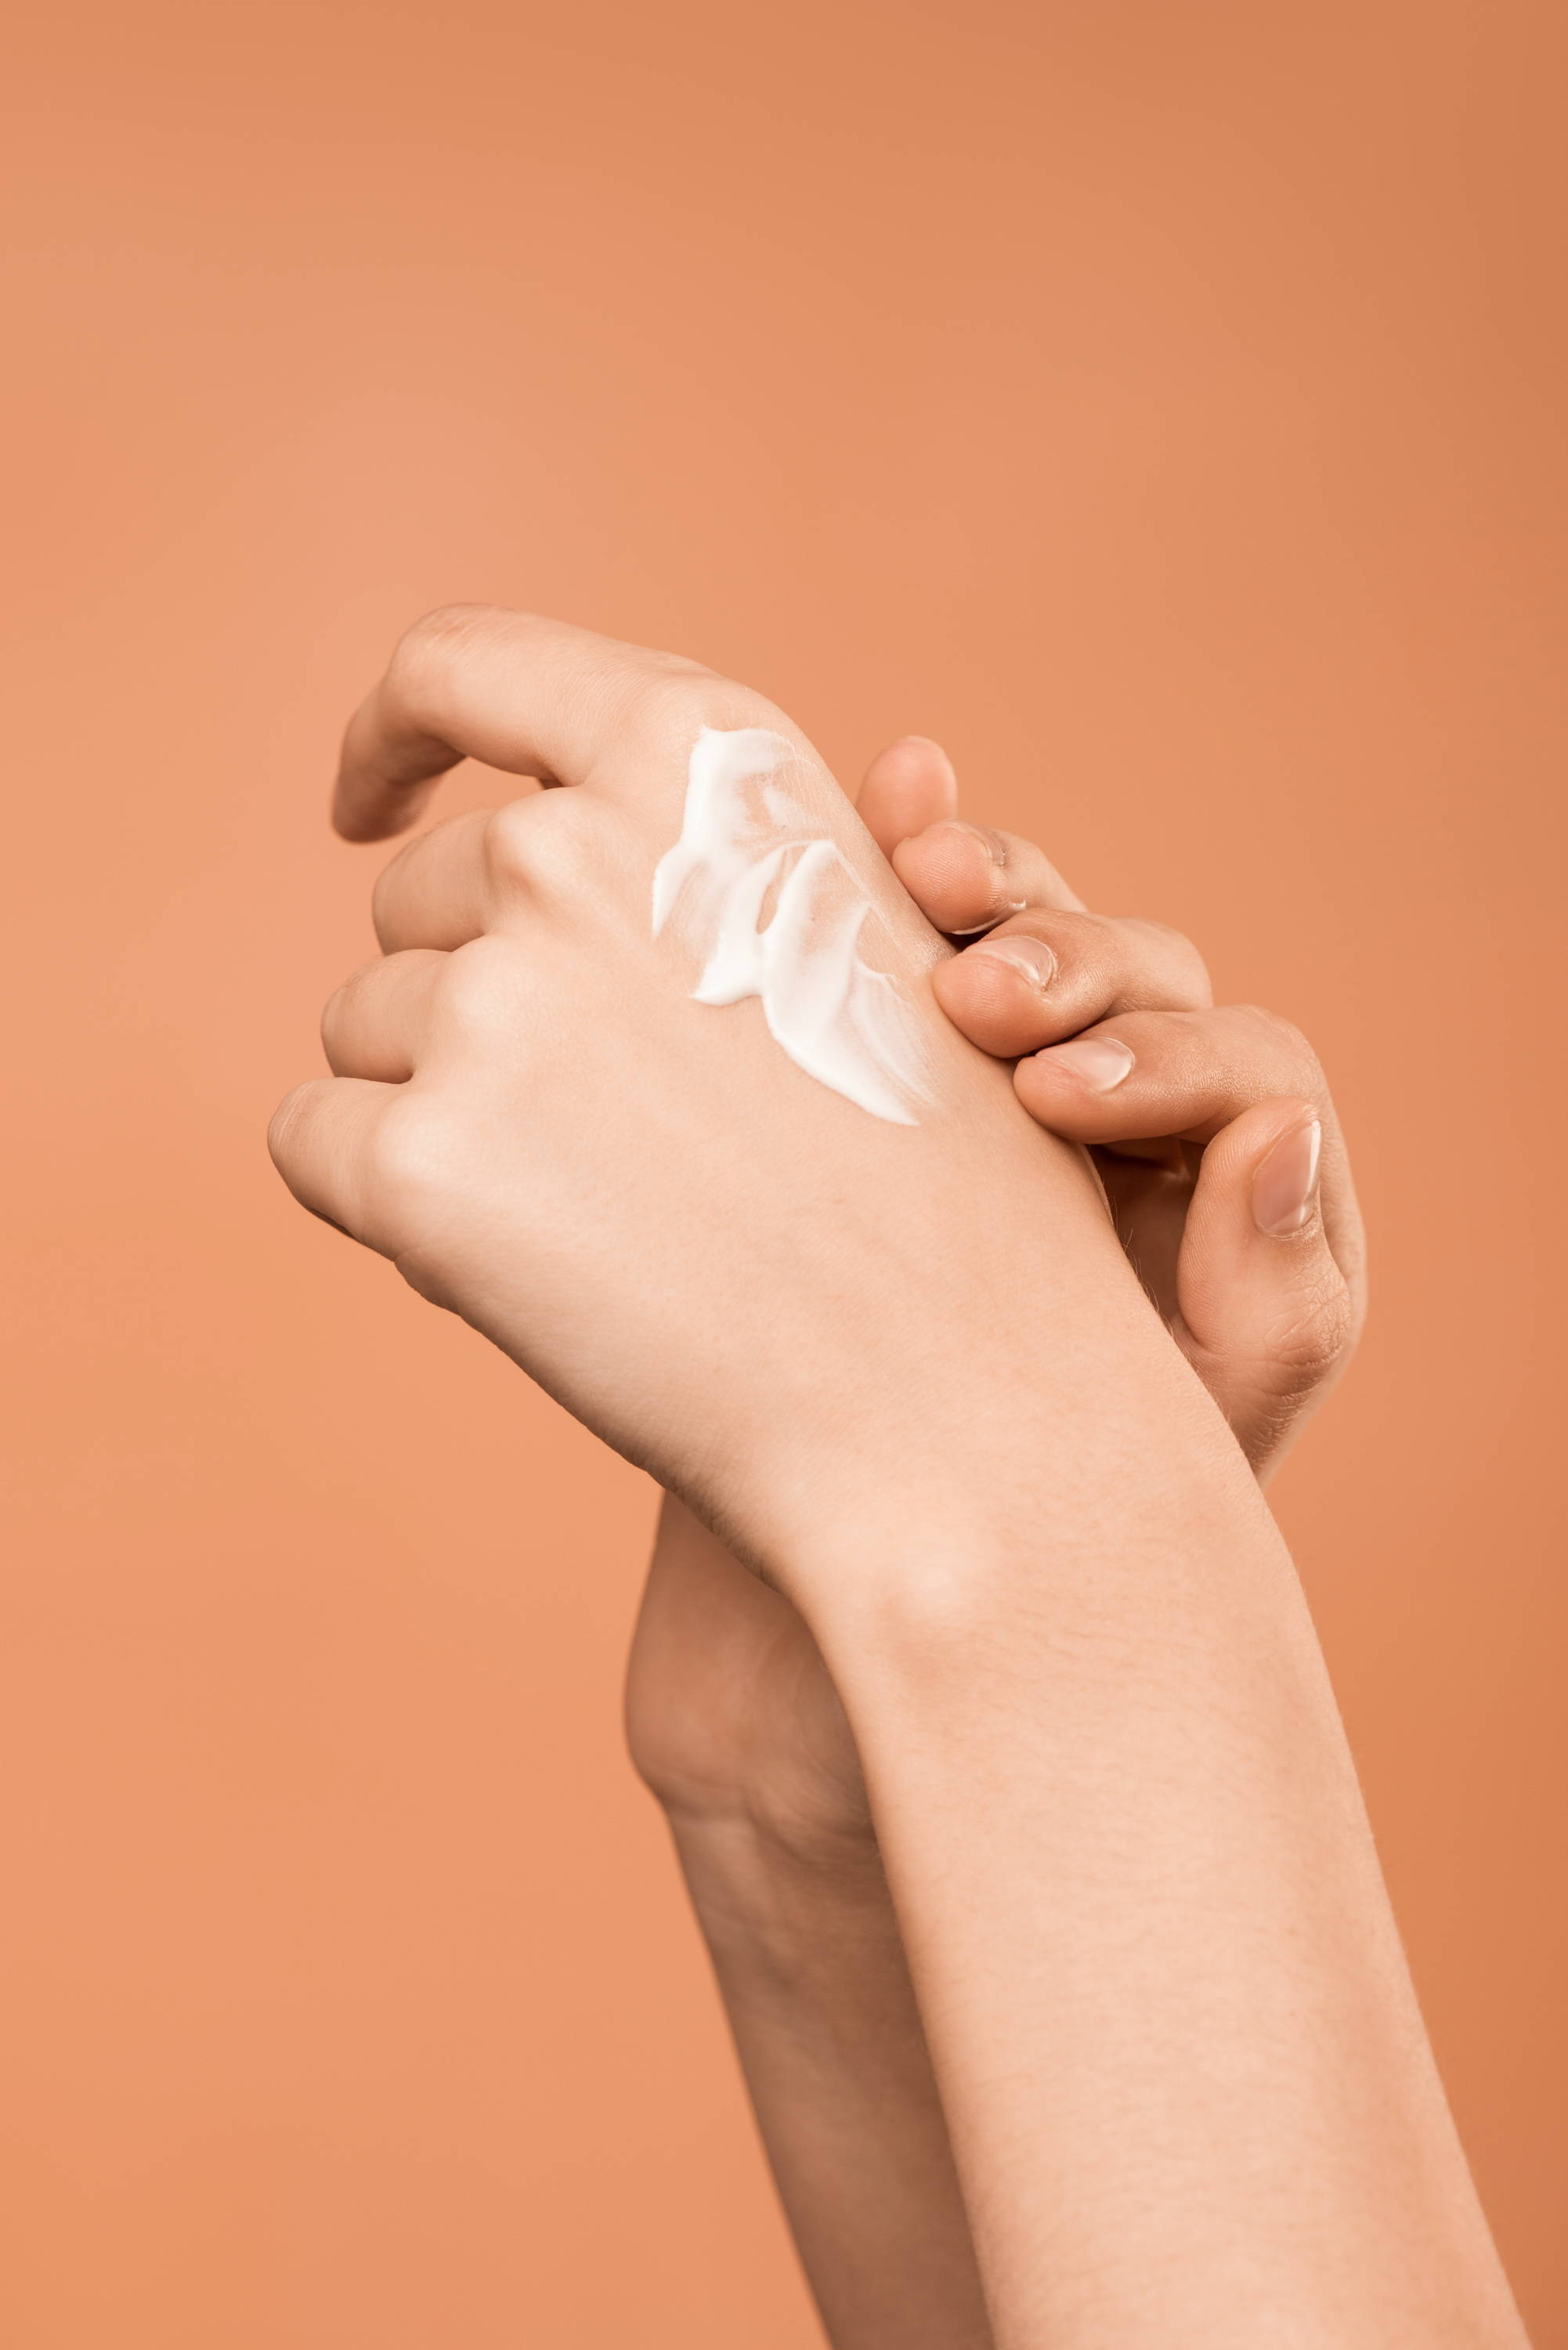 moisturizer on a pair of hands with a pink, peach background